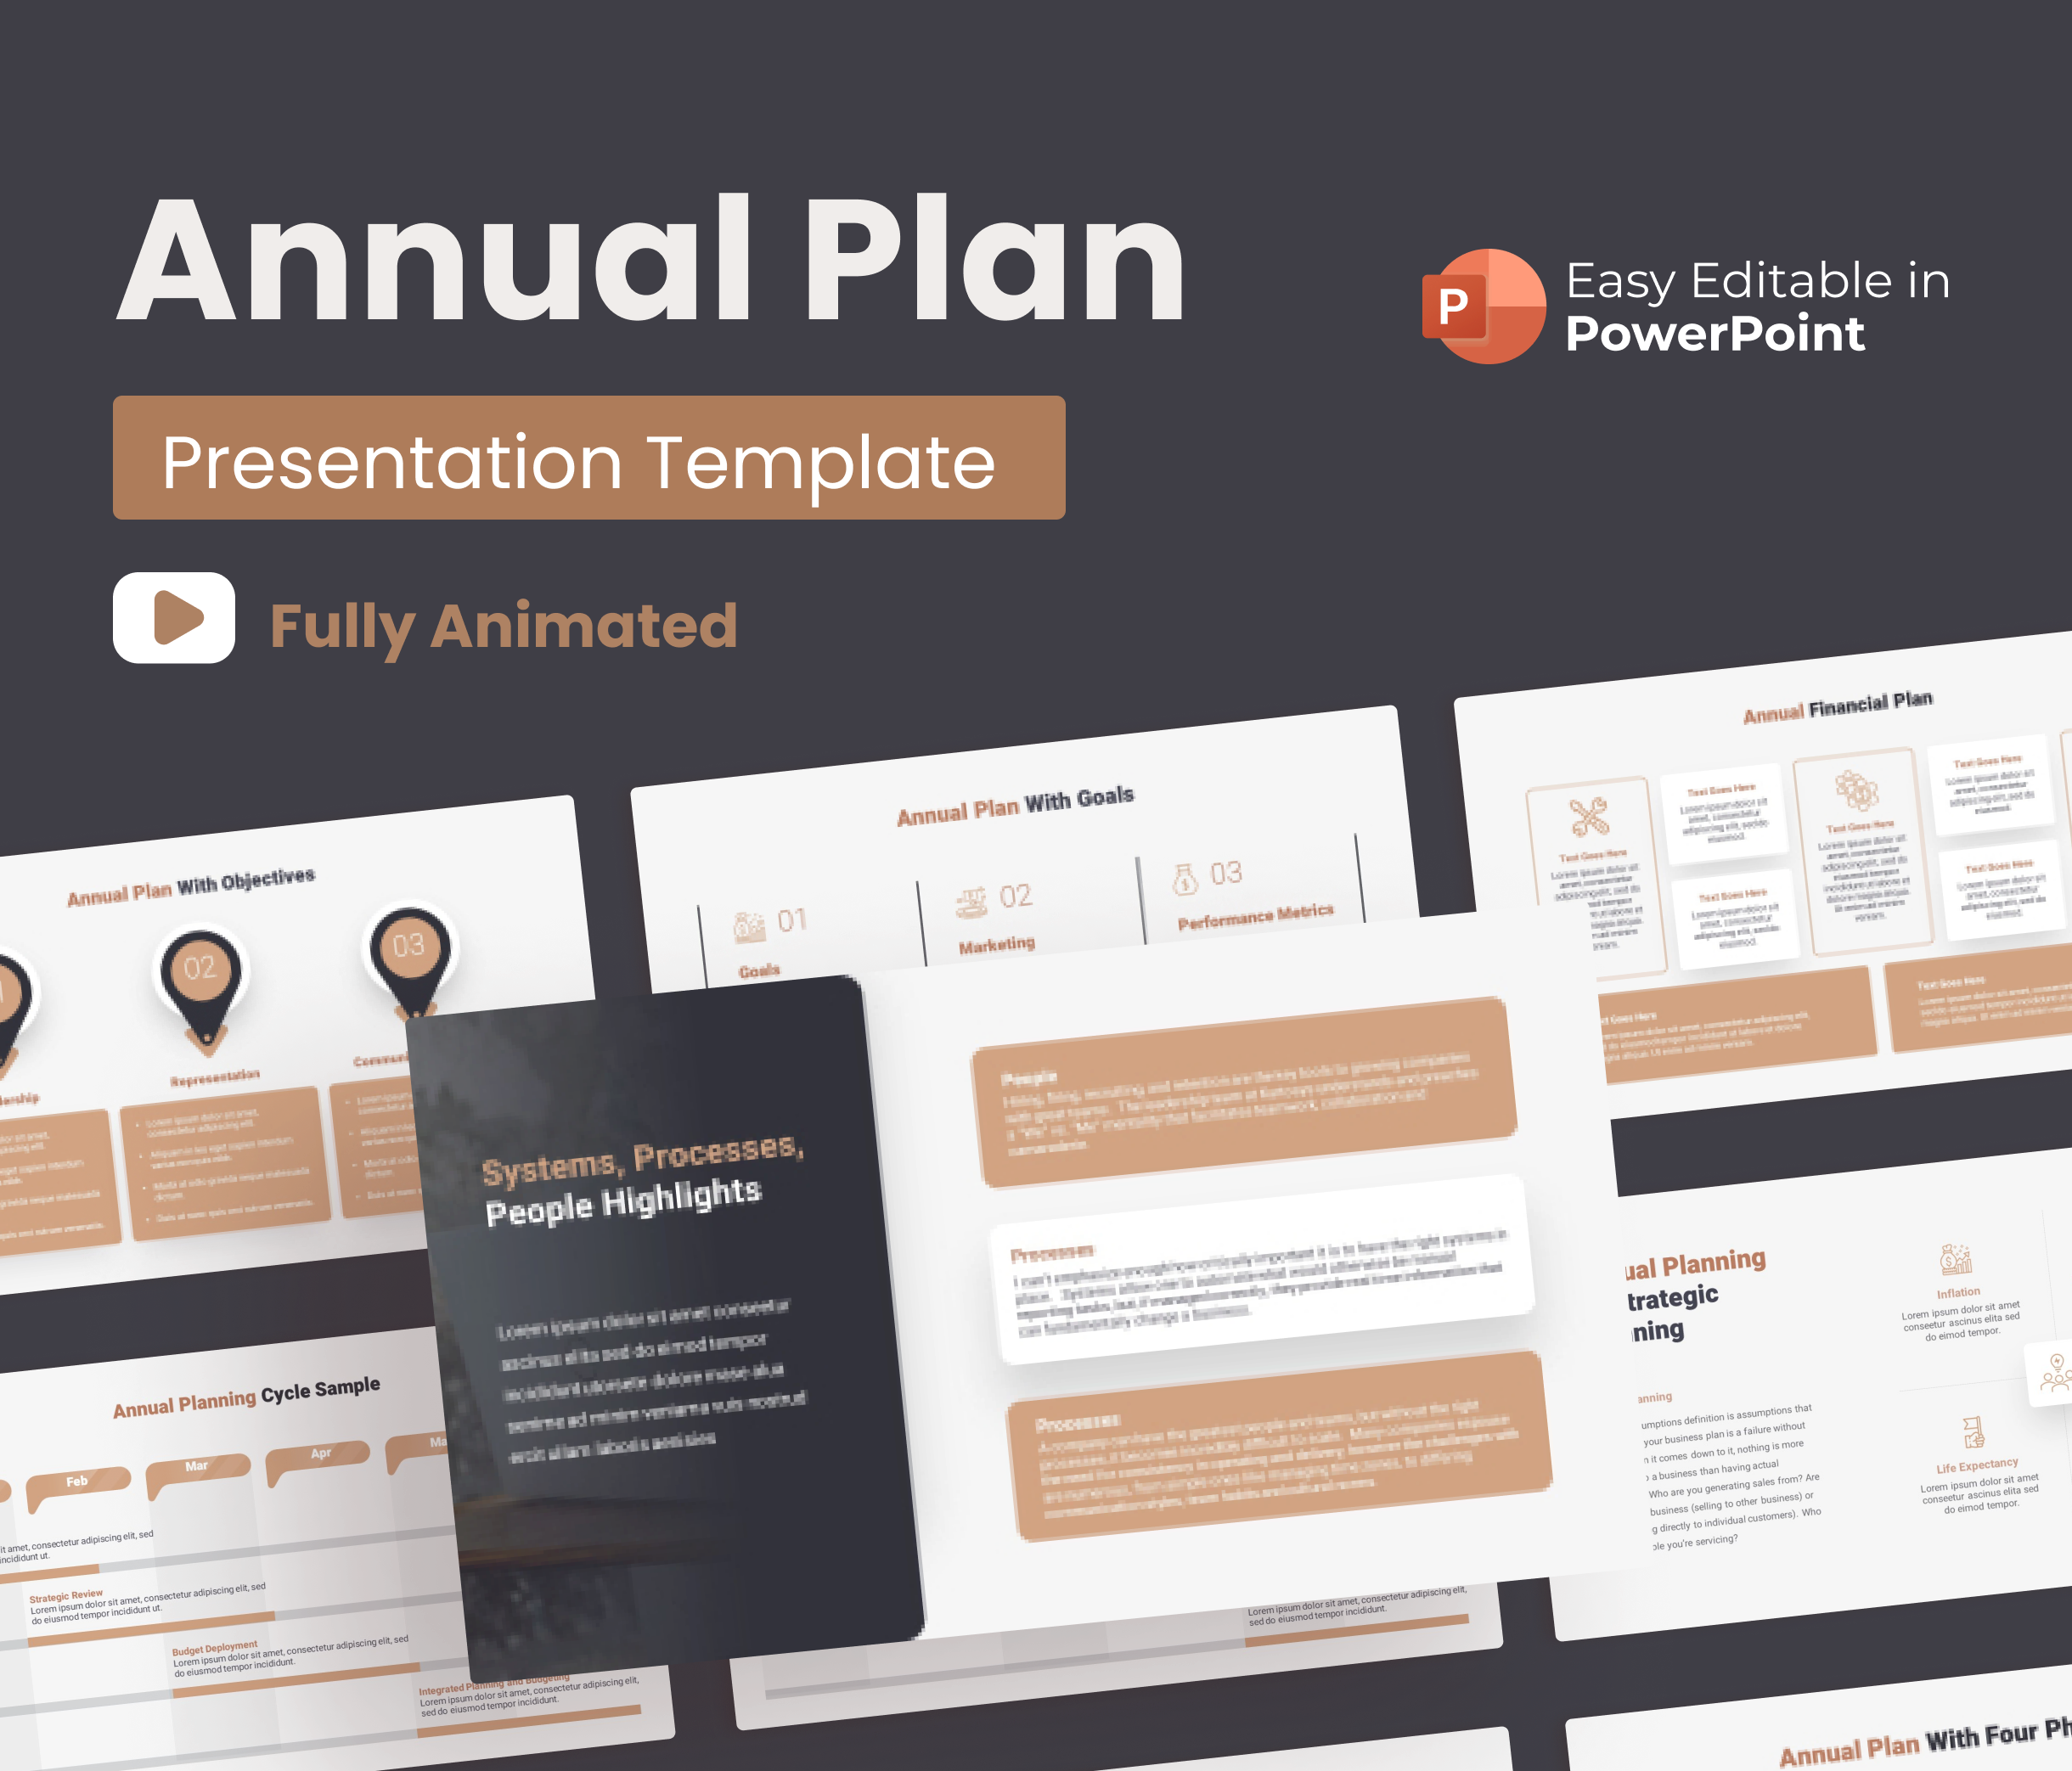 Annual Plan PowerPoint Presentation Animated Template